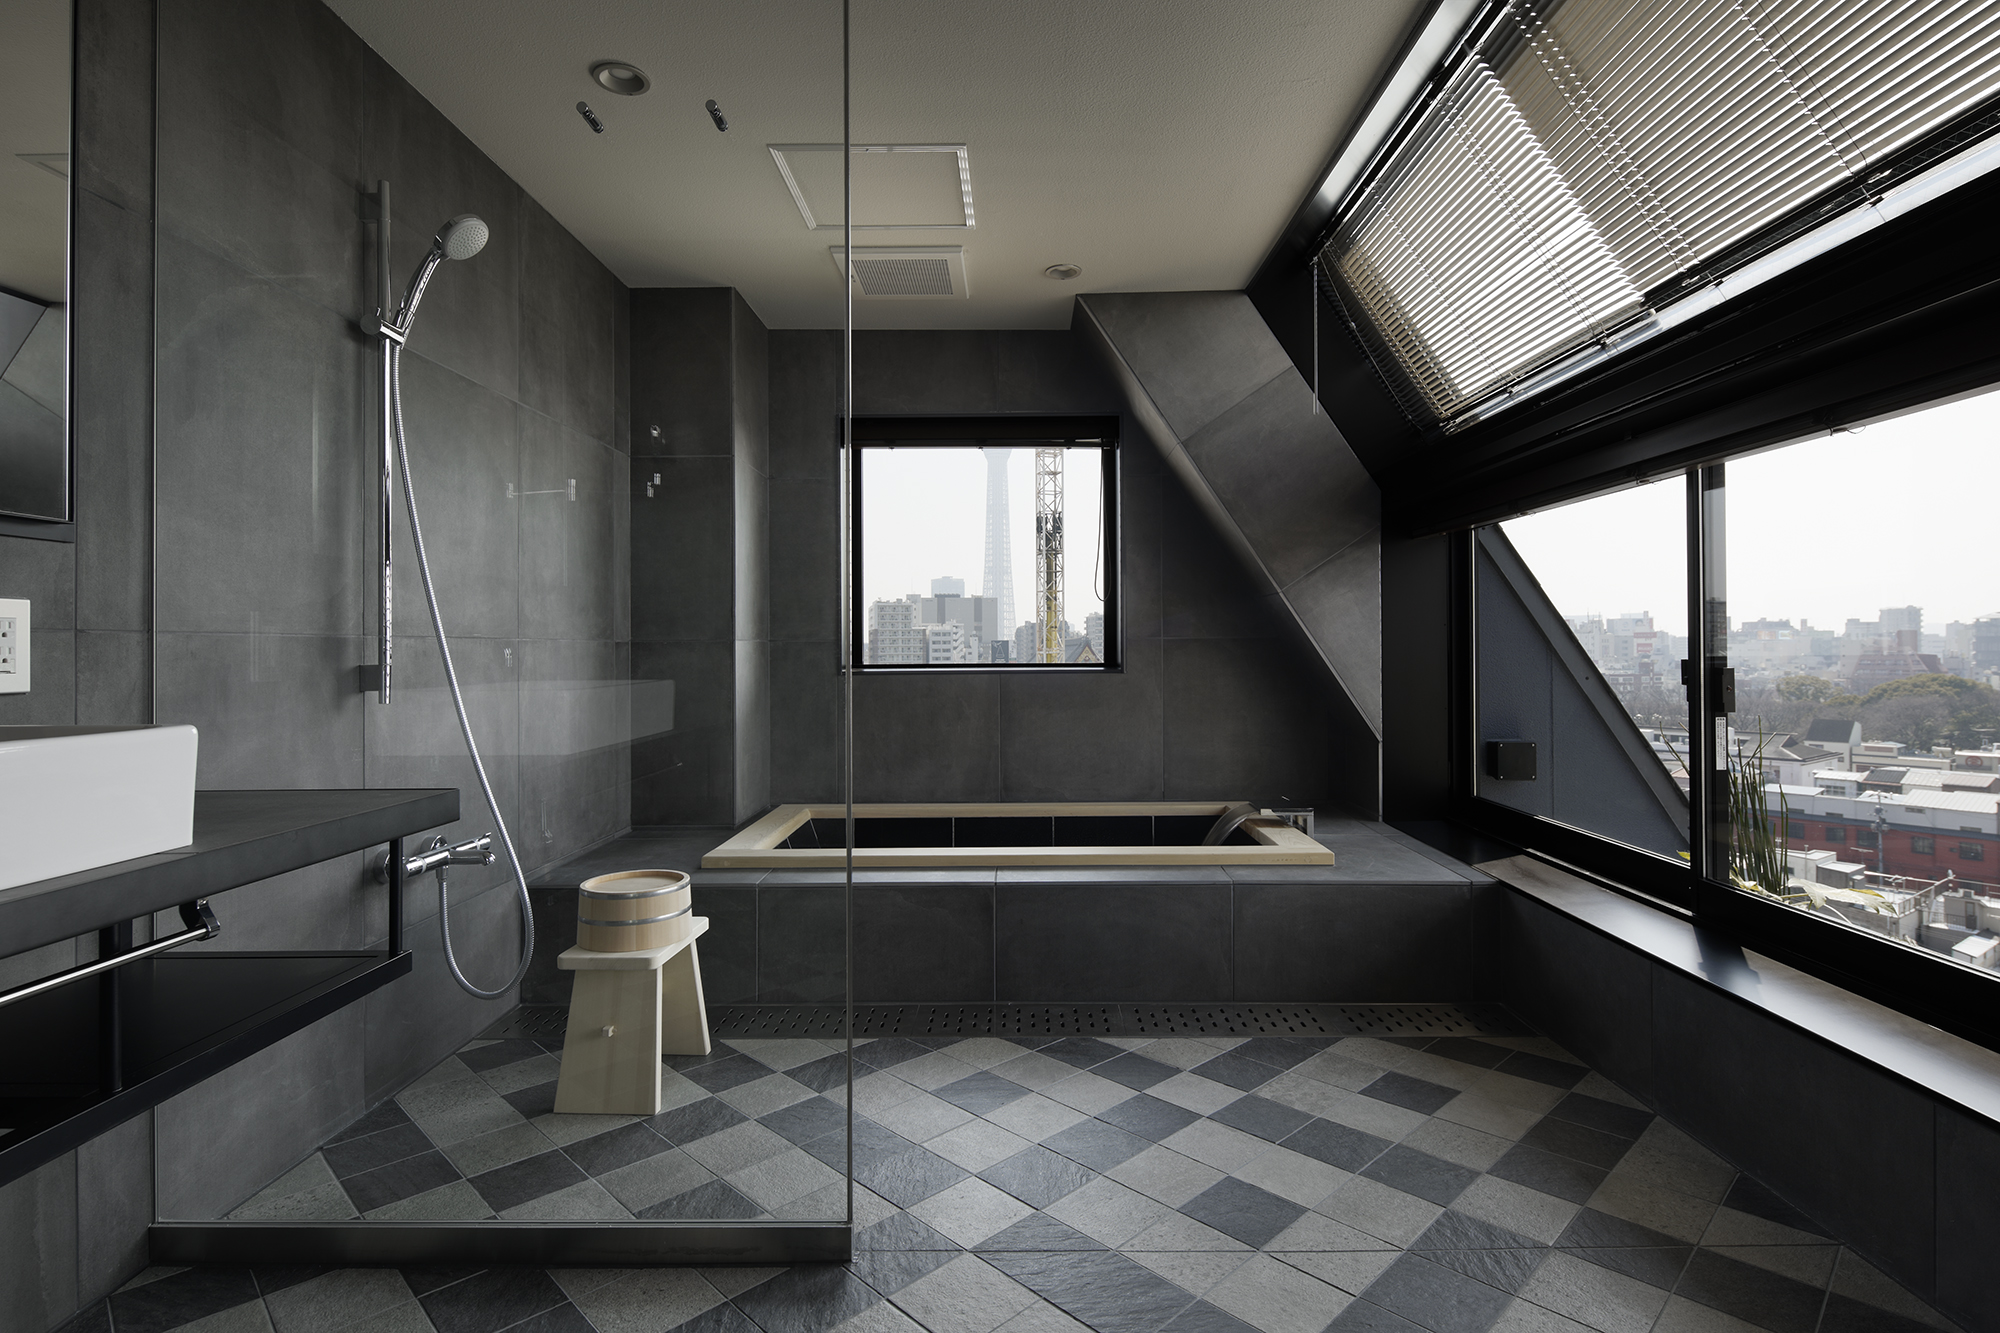 tokyo s hottest new design hotel vice On design hotel tokyo